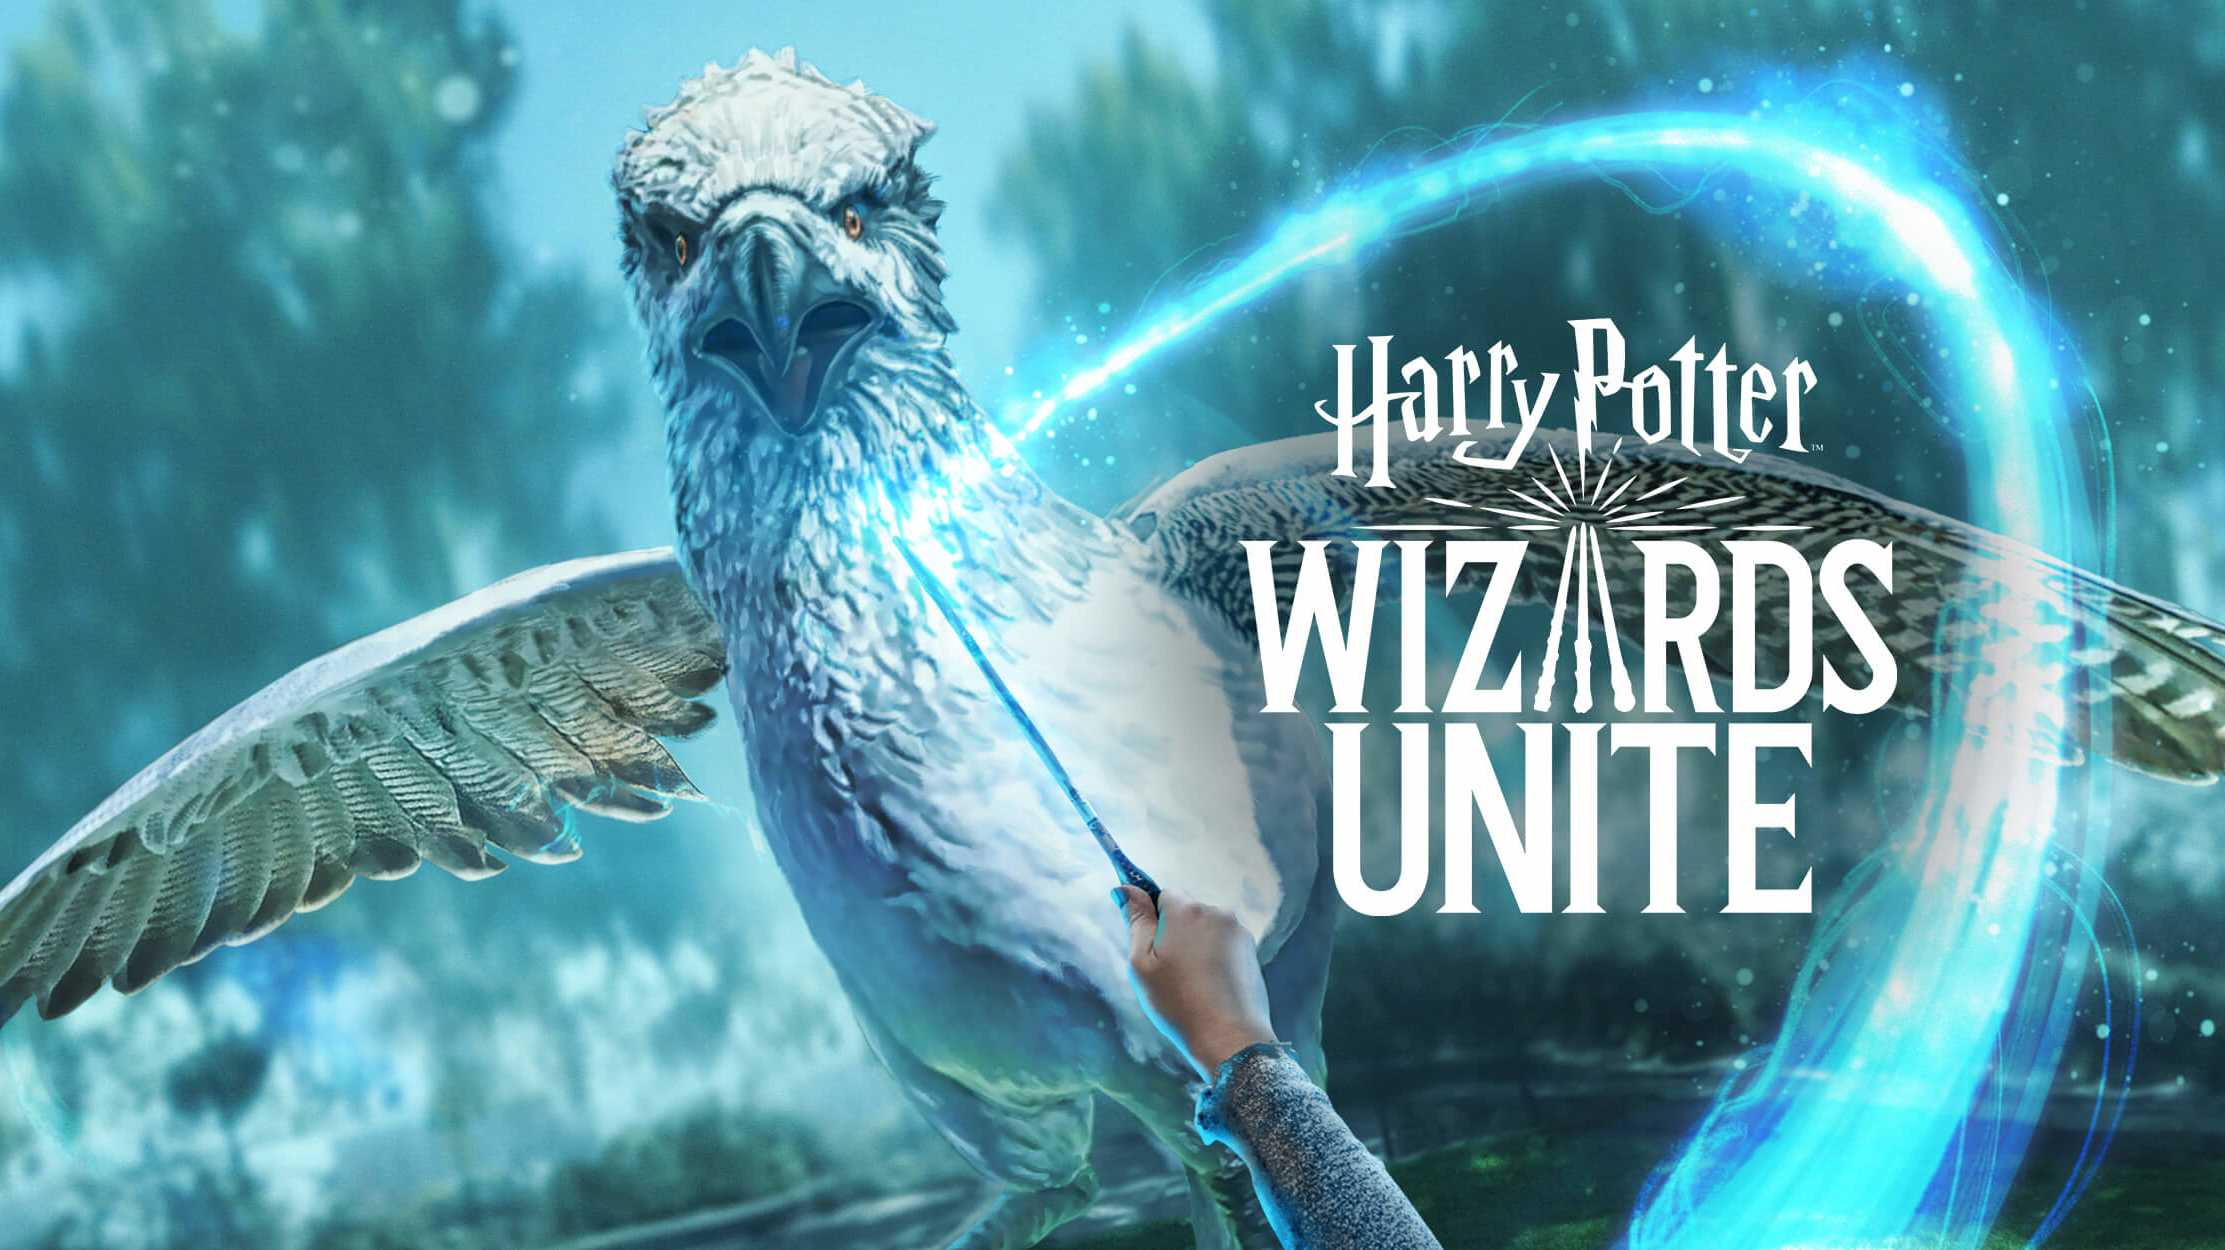 Harry Potter Wizards Unite: Neues Spiel der Pokémon-Go-Macher am 21. Juni